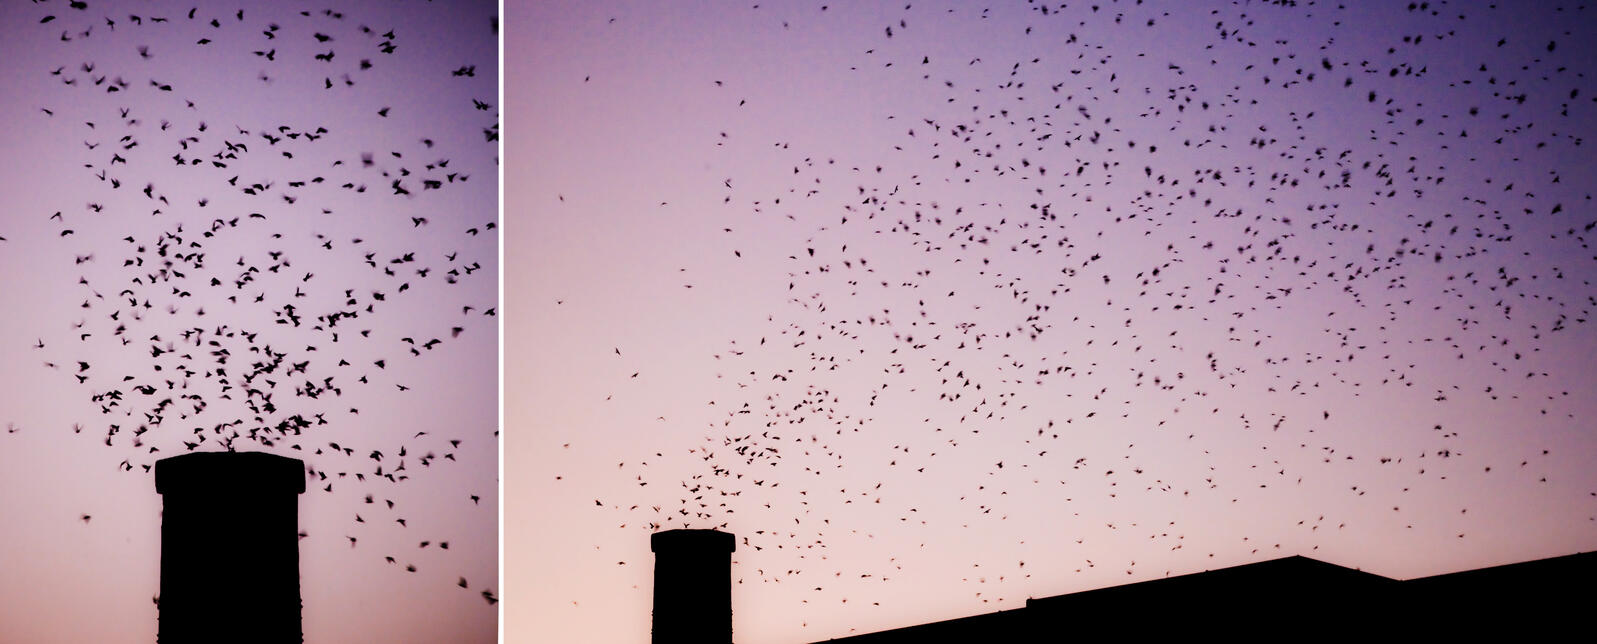 Chimney Swifts roost in the fall, before migrating to the Amazon River Basin.